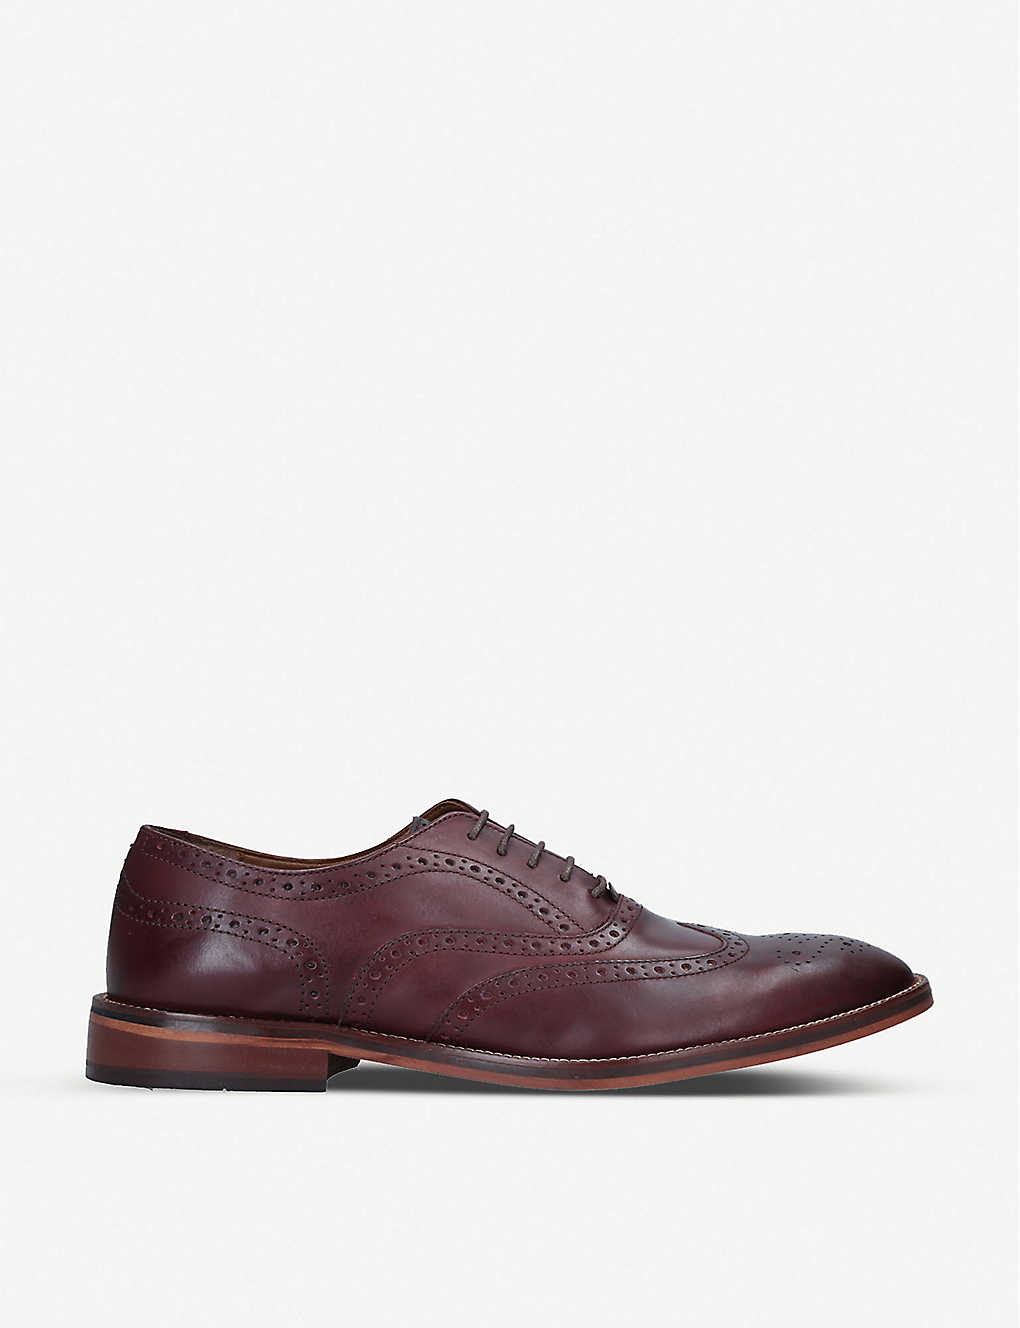 KG KURT GEIGER: Sky perforated leather brogues